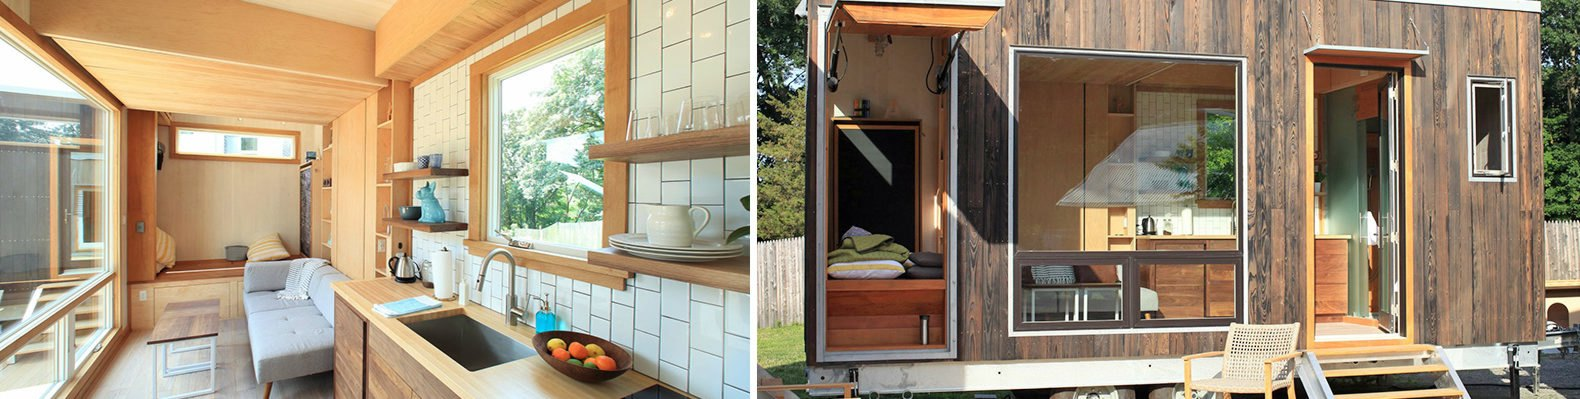 Cubist Engineering, Sturgis Tiny Home, tiny home design, clt timber homes, clt timber tiny home, clt wood tiny home, tiny homes for sale, custom tiny homes, tiny home design, sustainable wood, environmentally-friendly wood, tiny home living, tiny home on wheels